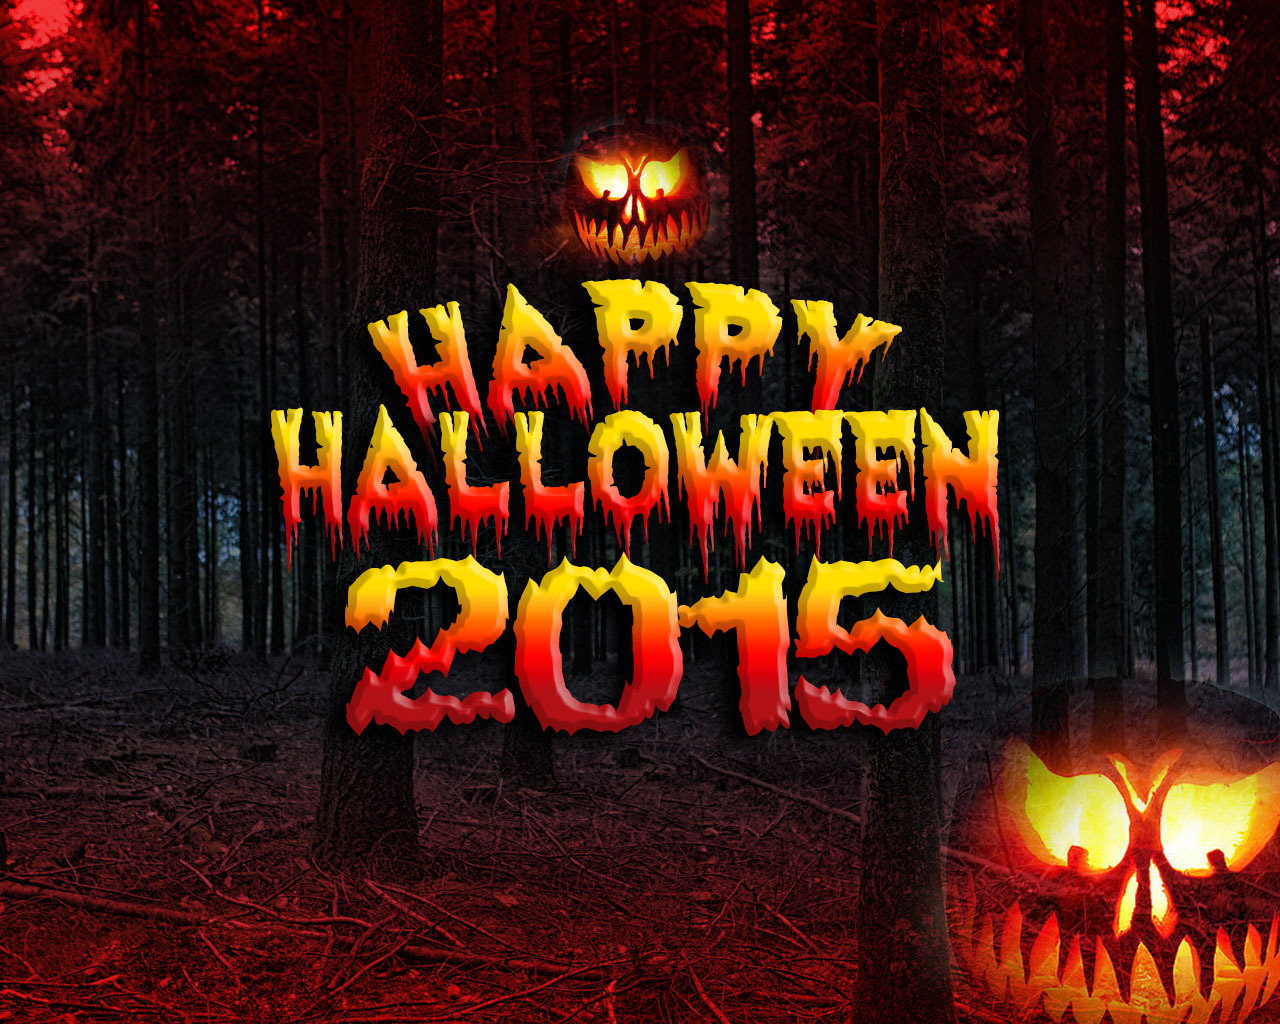 happy halloween 2015 wallpaper photo image - Halloween Which Day